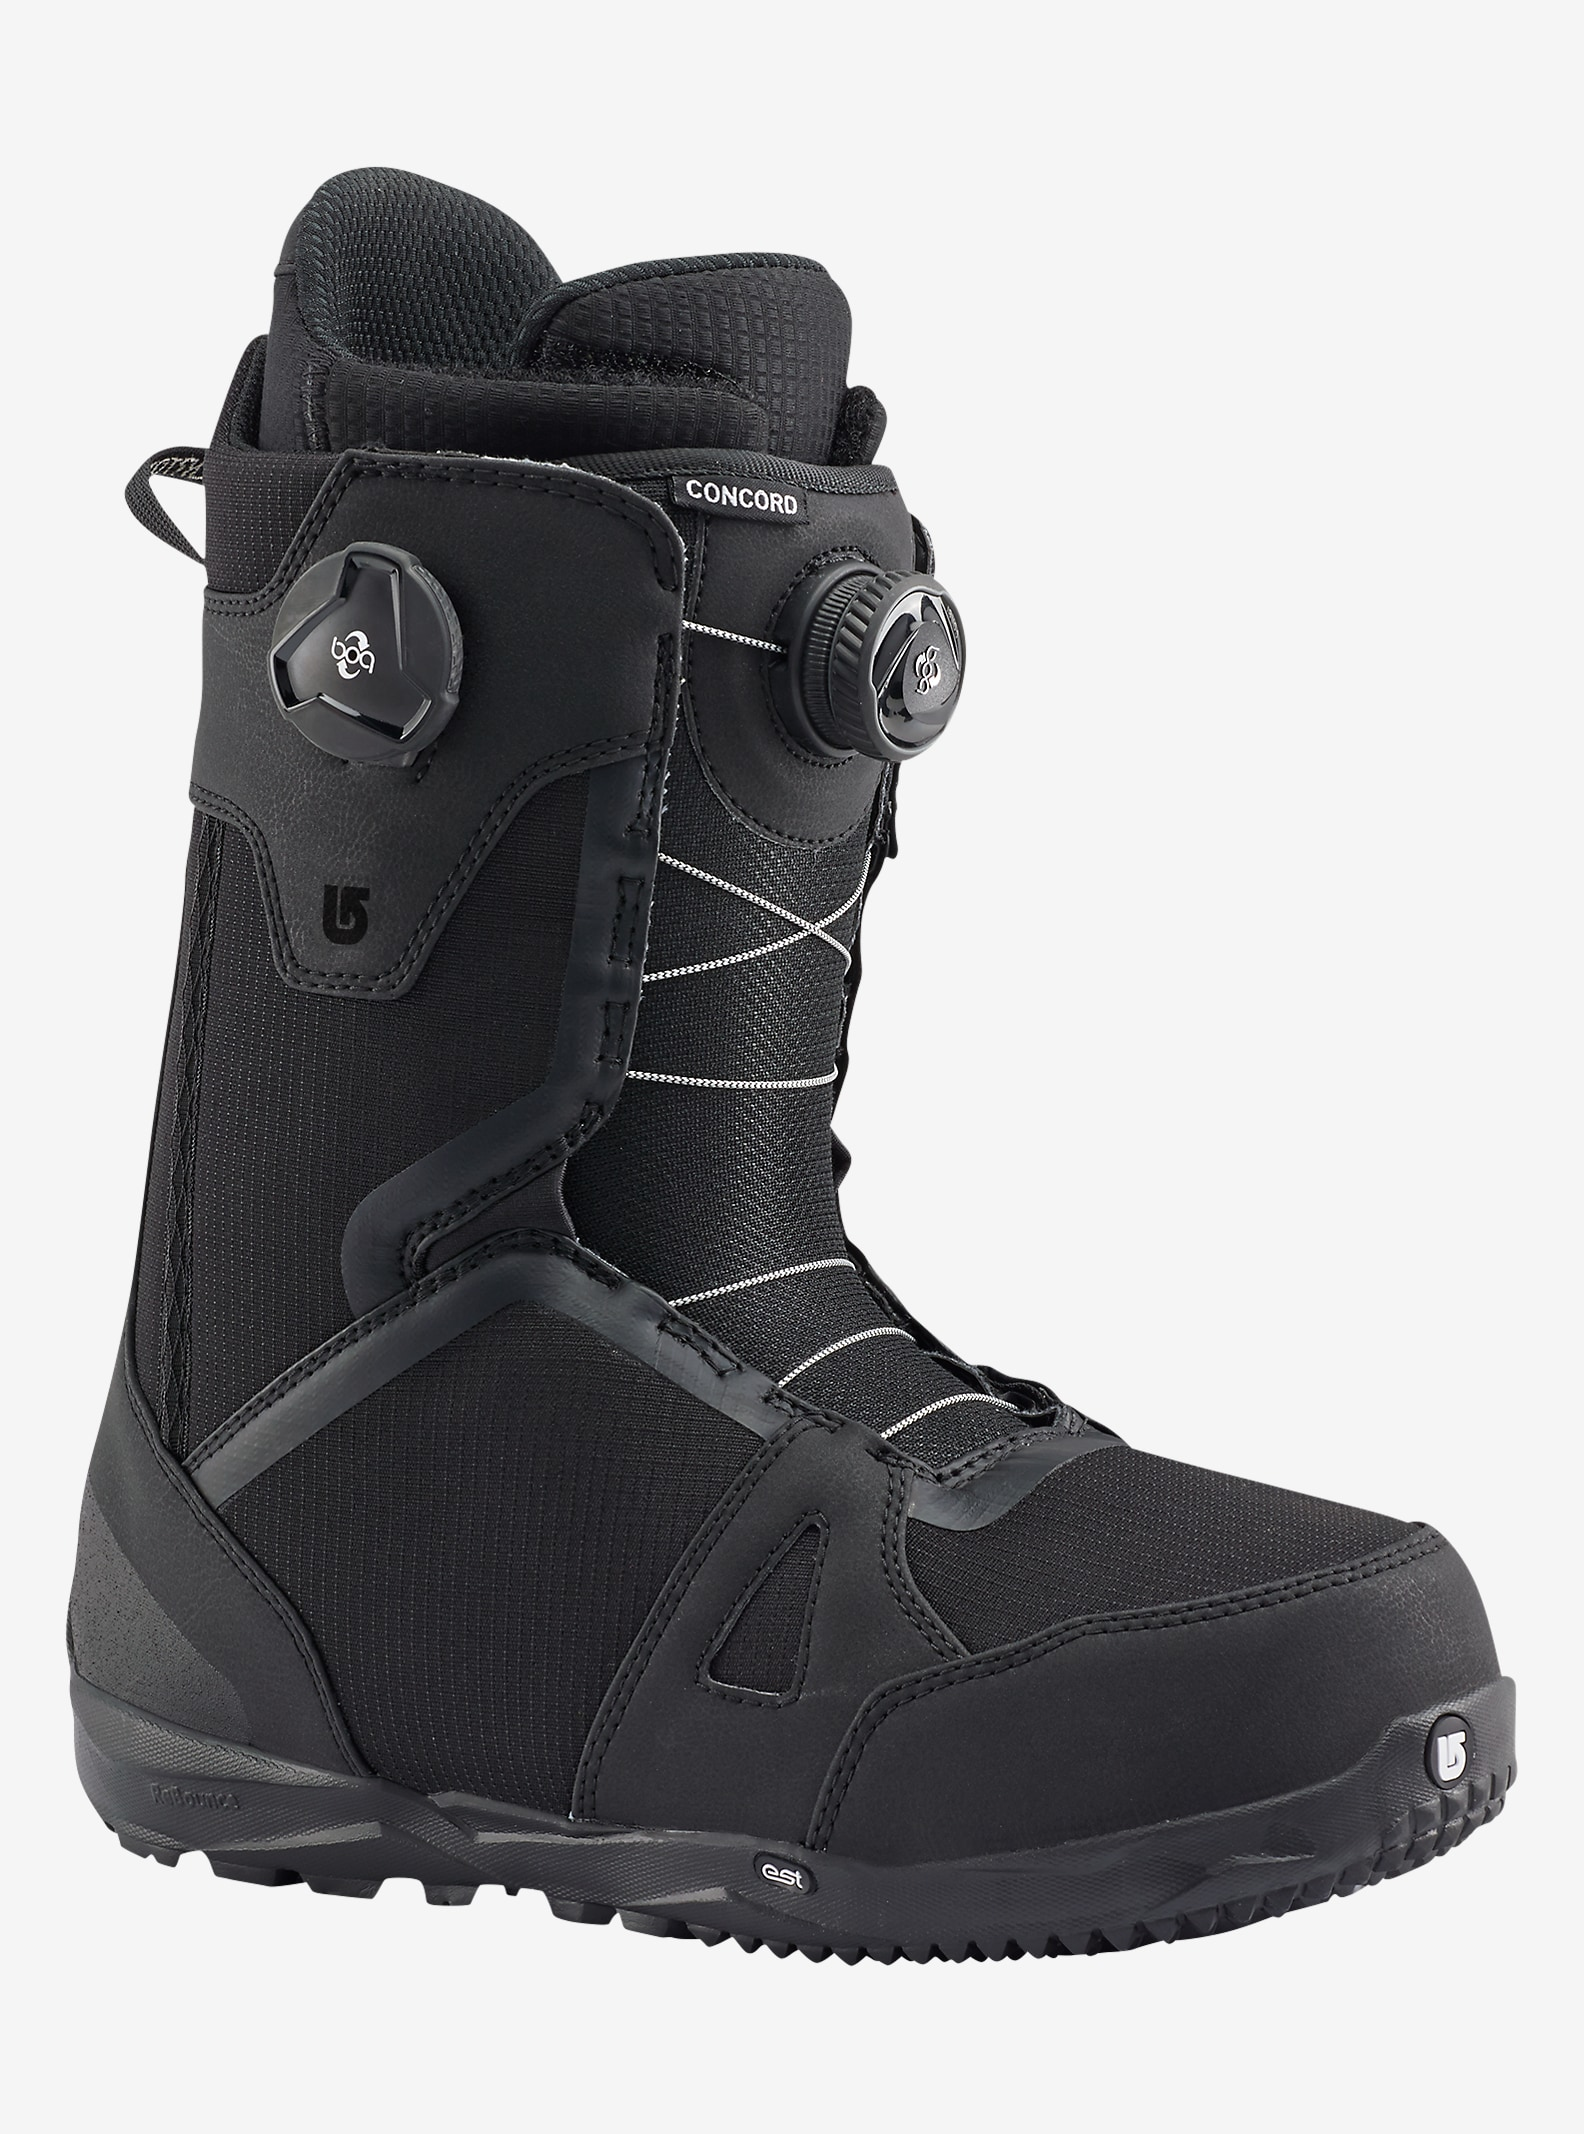 Burton Concord Boa® Snowboard Boot shown in Black